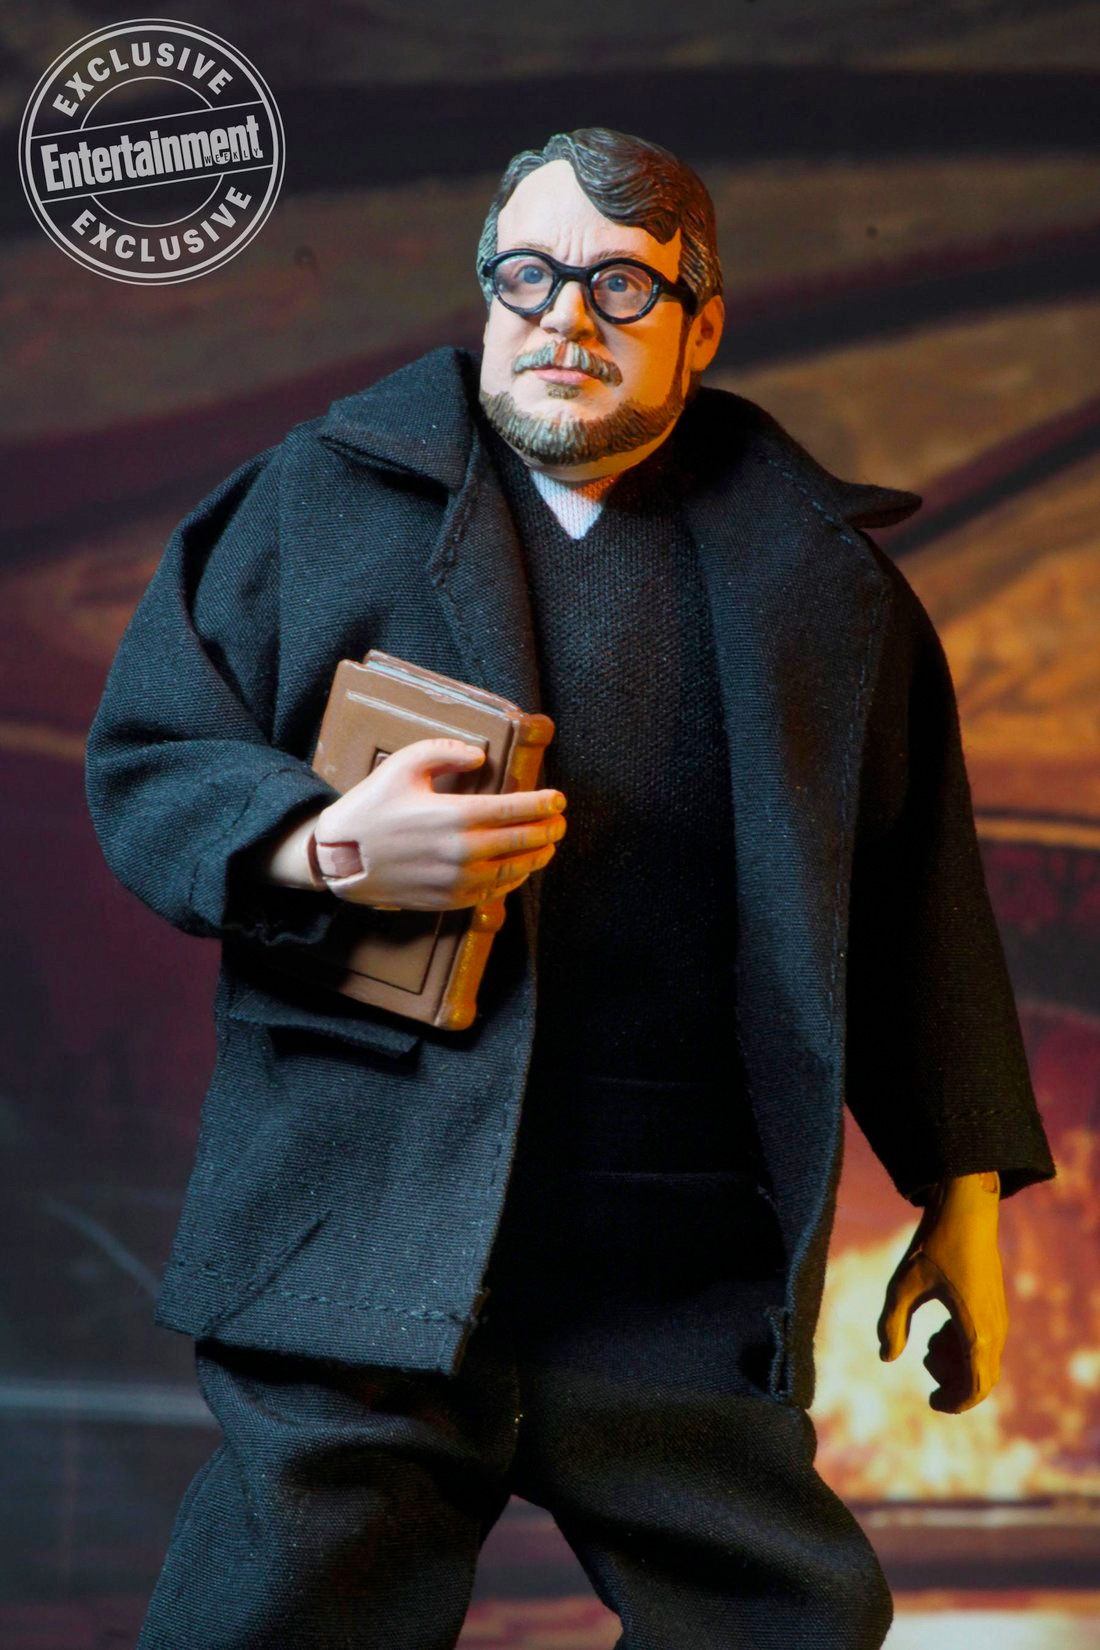 director-guillermo-del-toro-gets-his-very-own-action-figure1